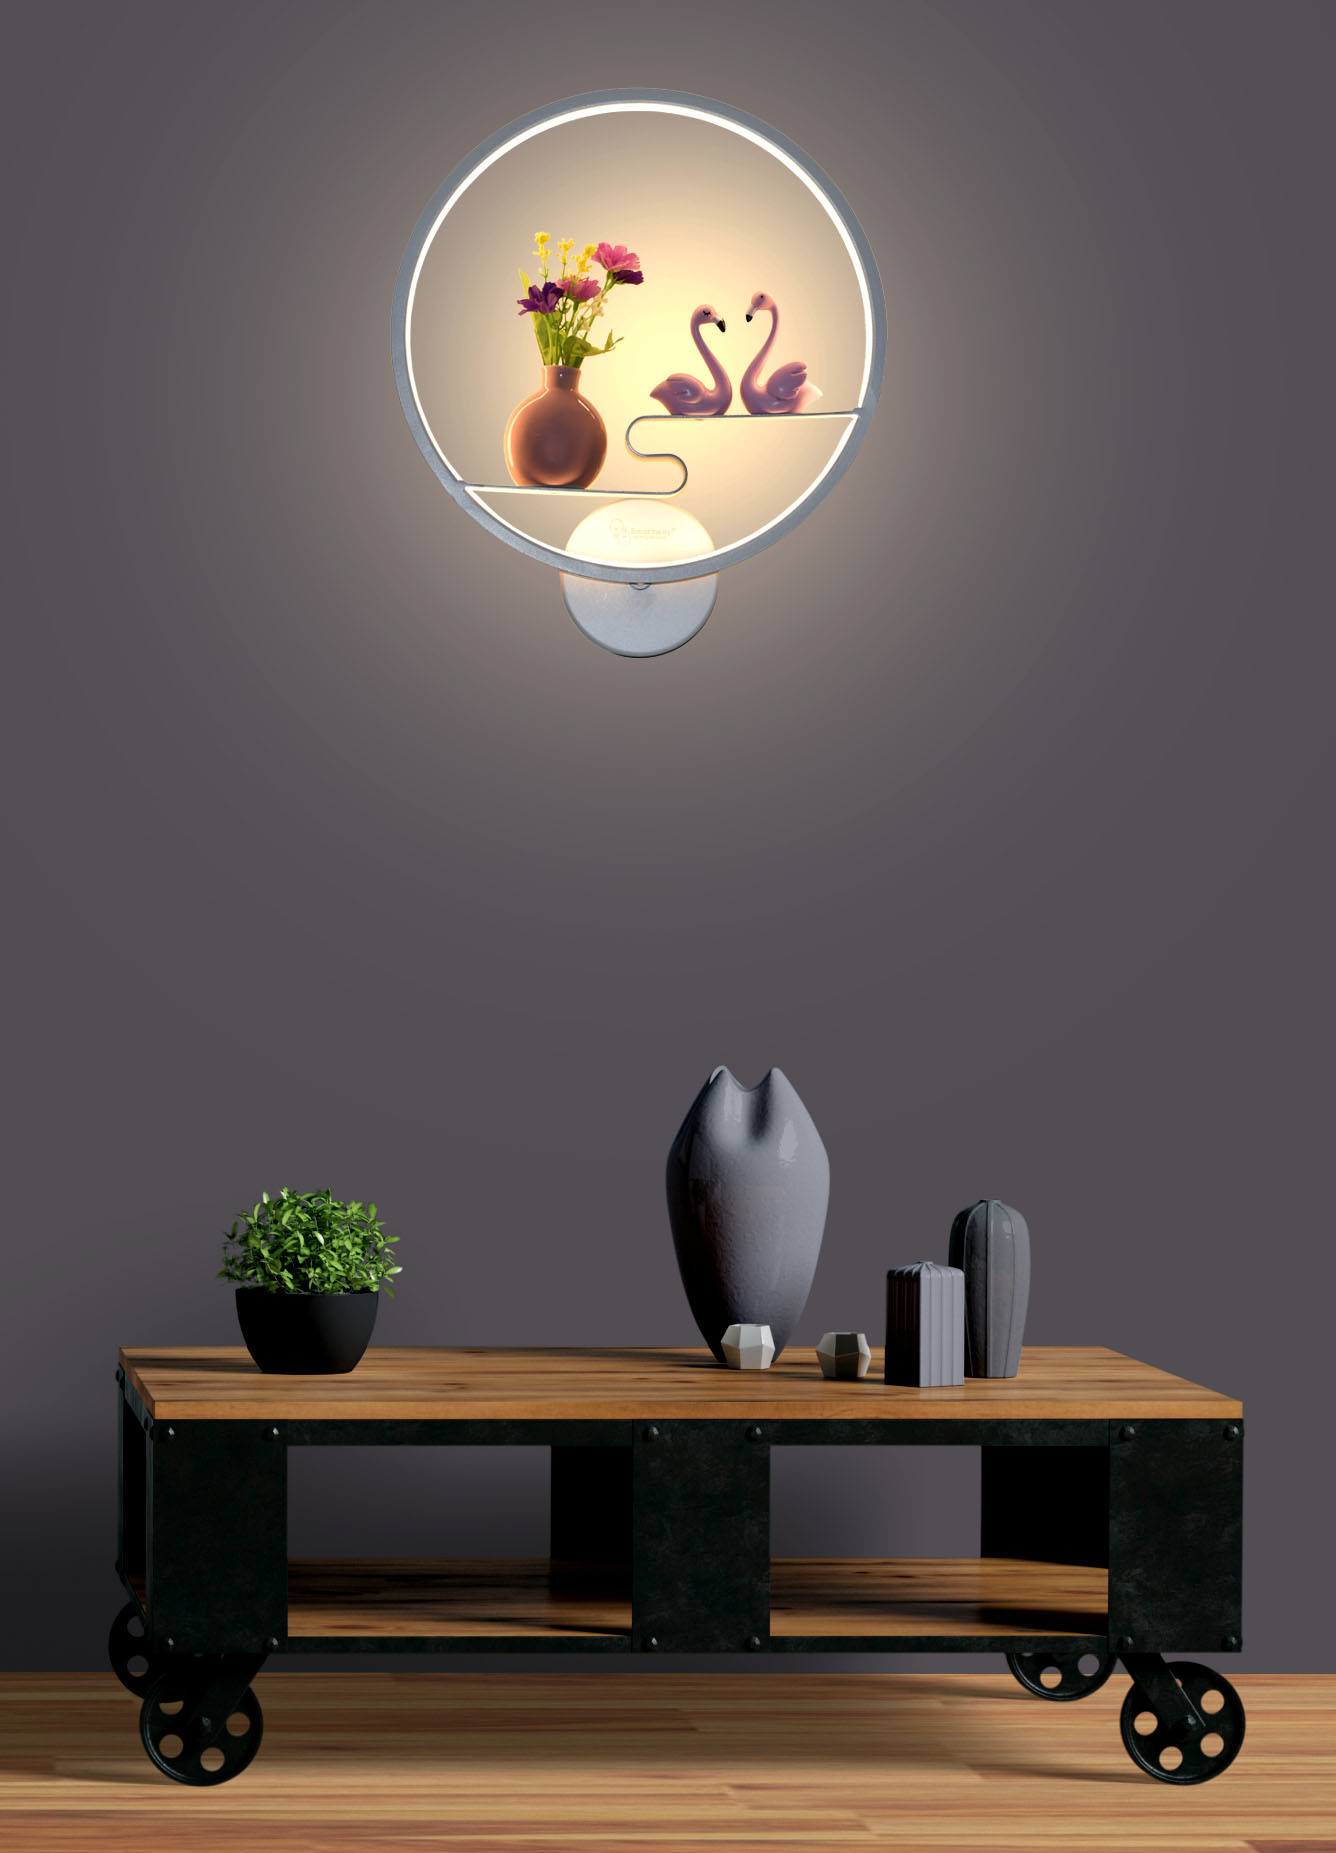 18w Ducks Wall Led Lamp With Flower (Warm White)